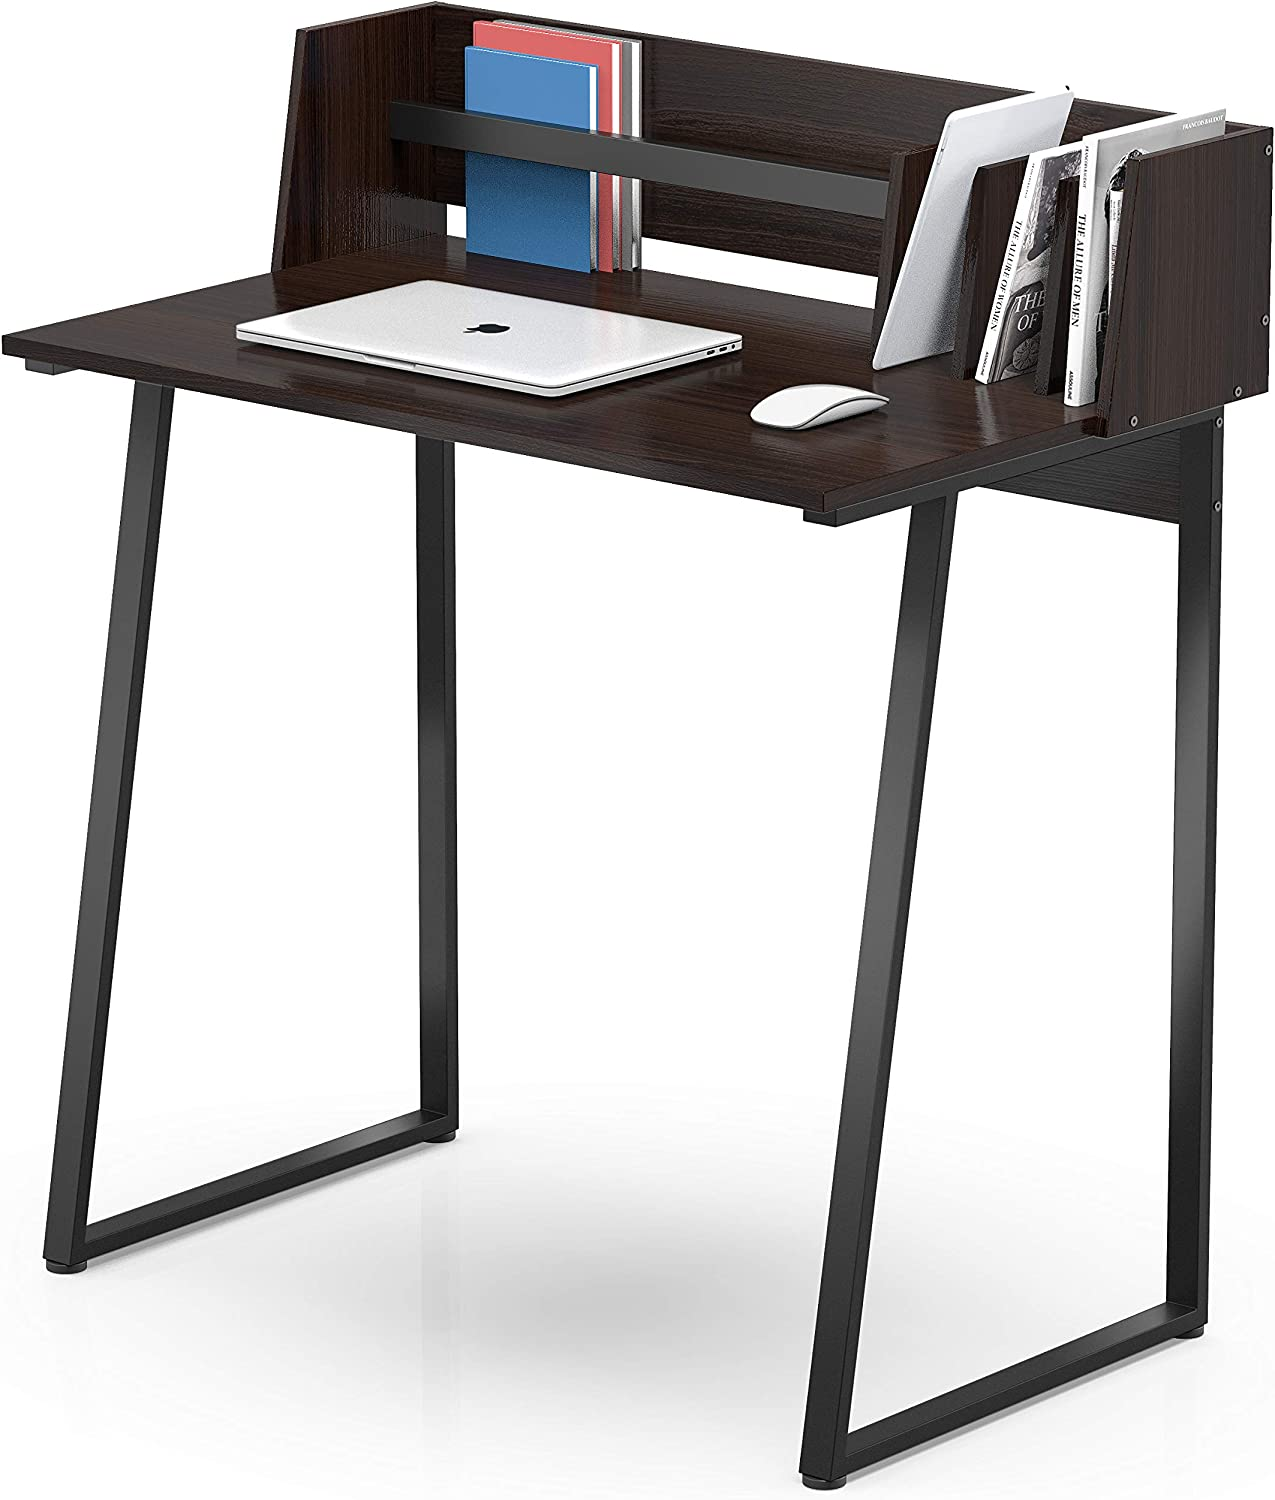 FITUEYES Black Writing Study Desk with Back Board Wood and Metal Computer Desk for Home and Office